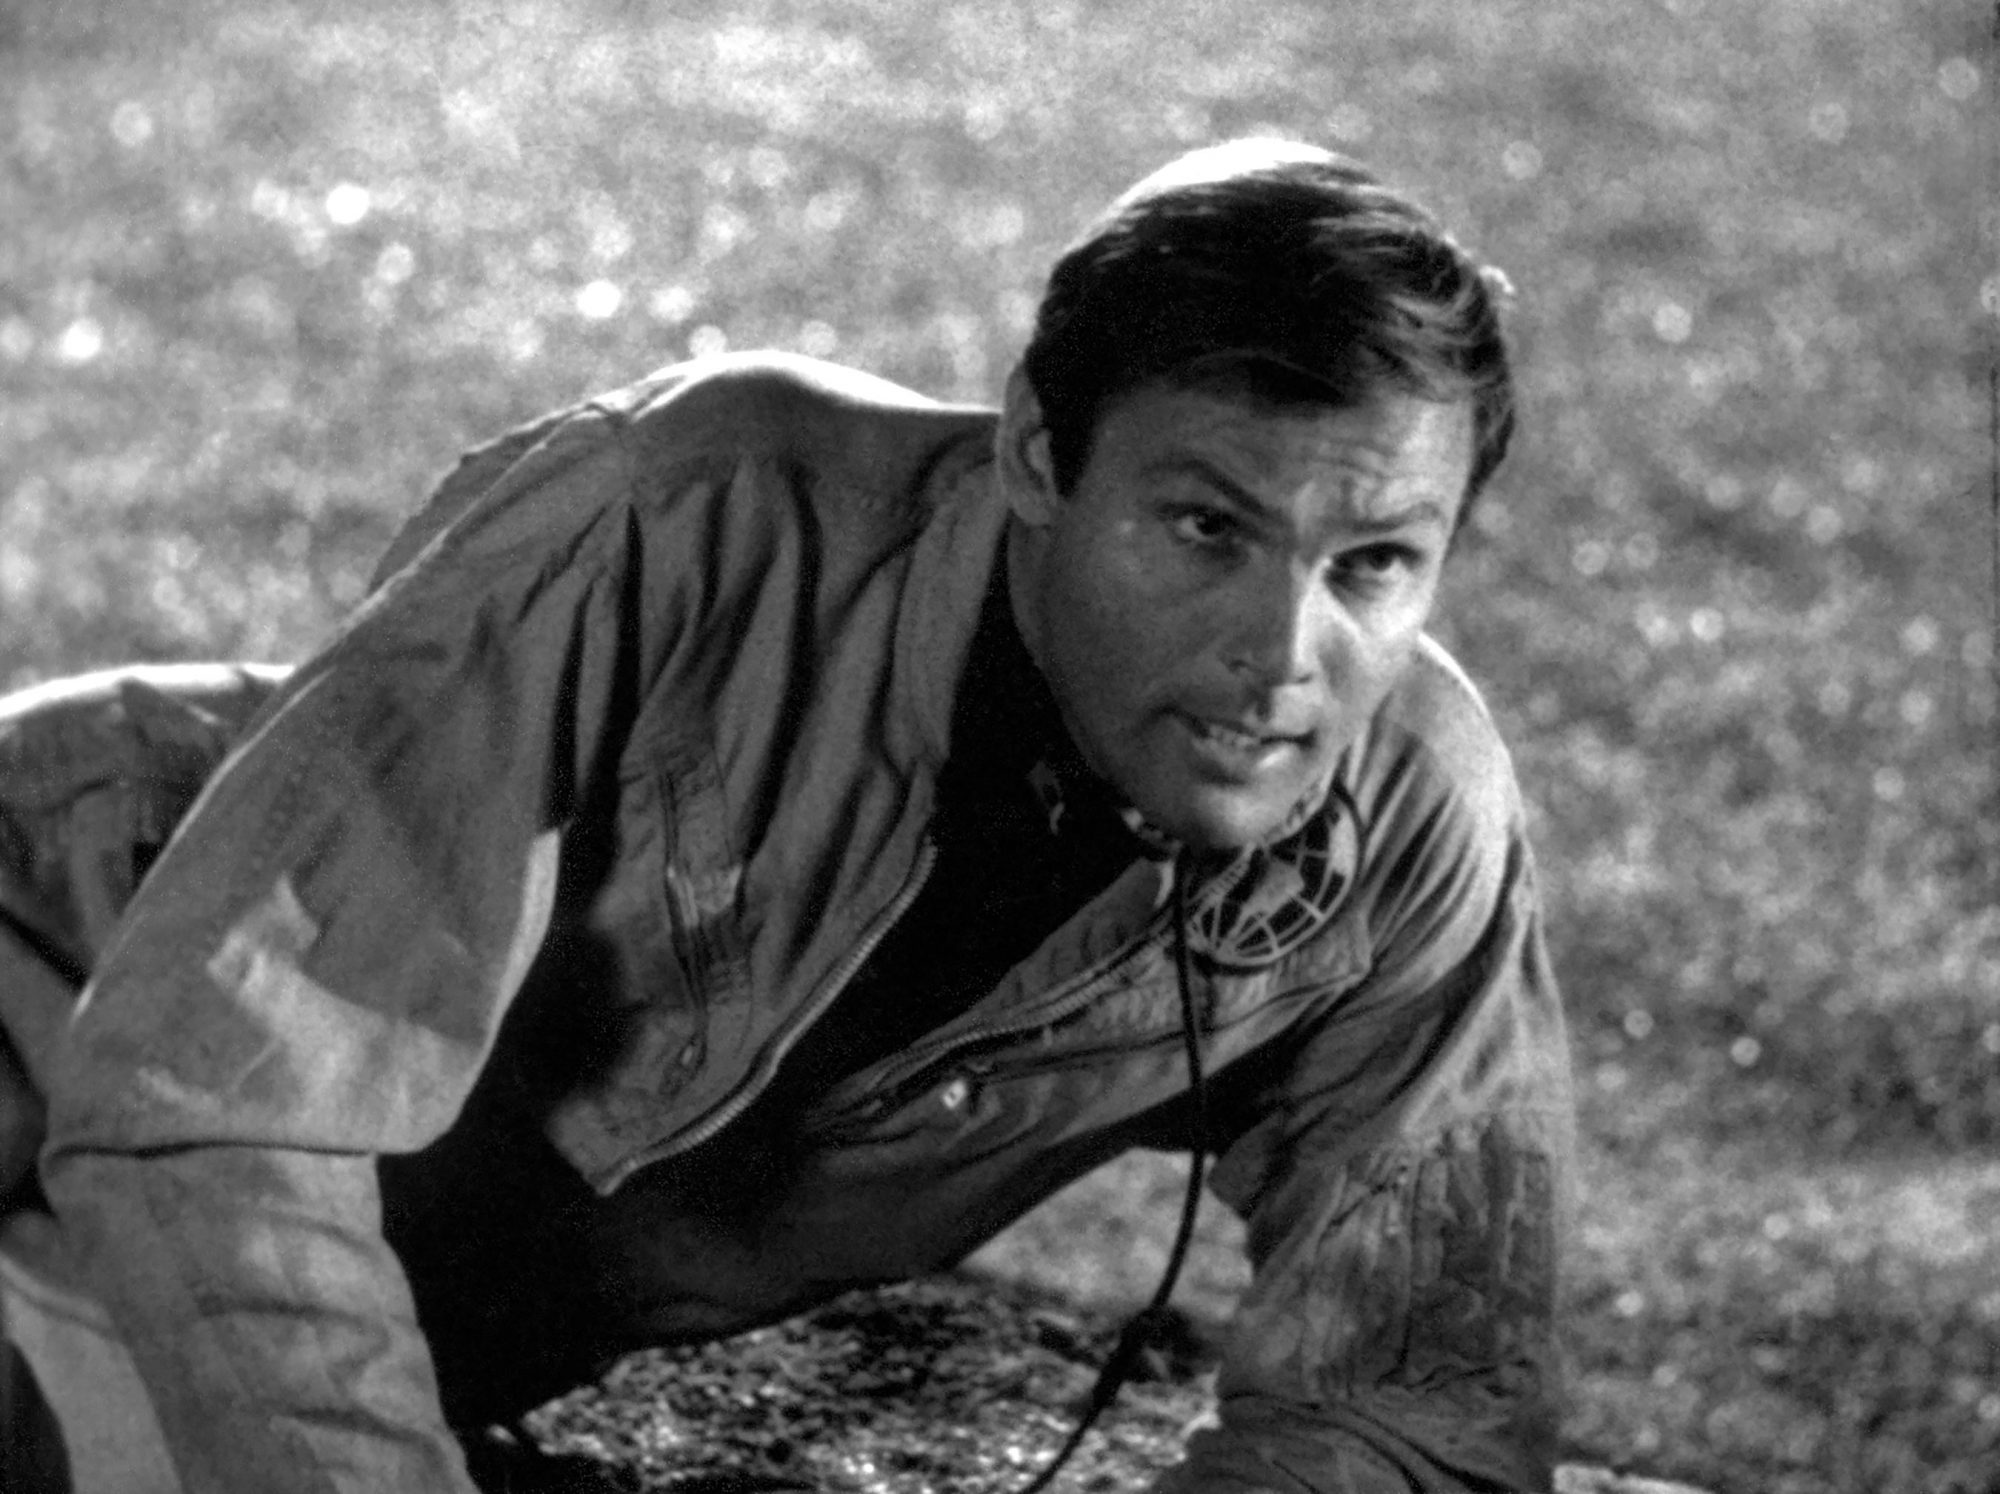 THE OUTER LIMITS, Adam West, Season 2, Ep. 'The Invisible Enemy', 1963-1965.